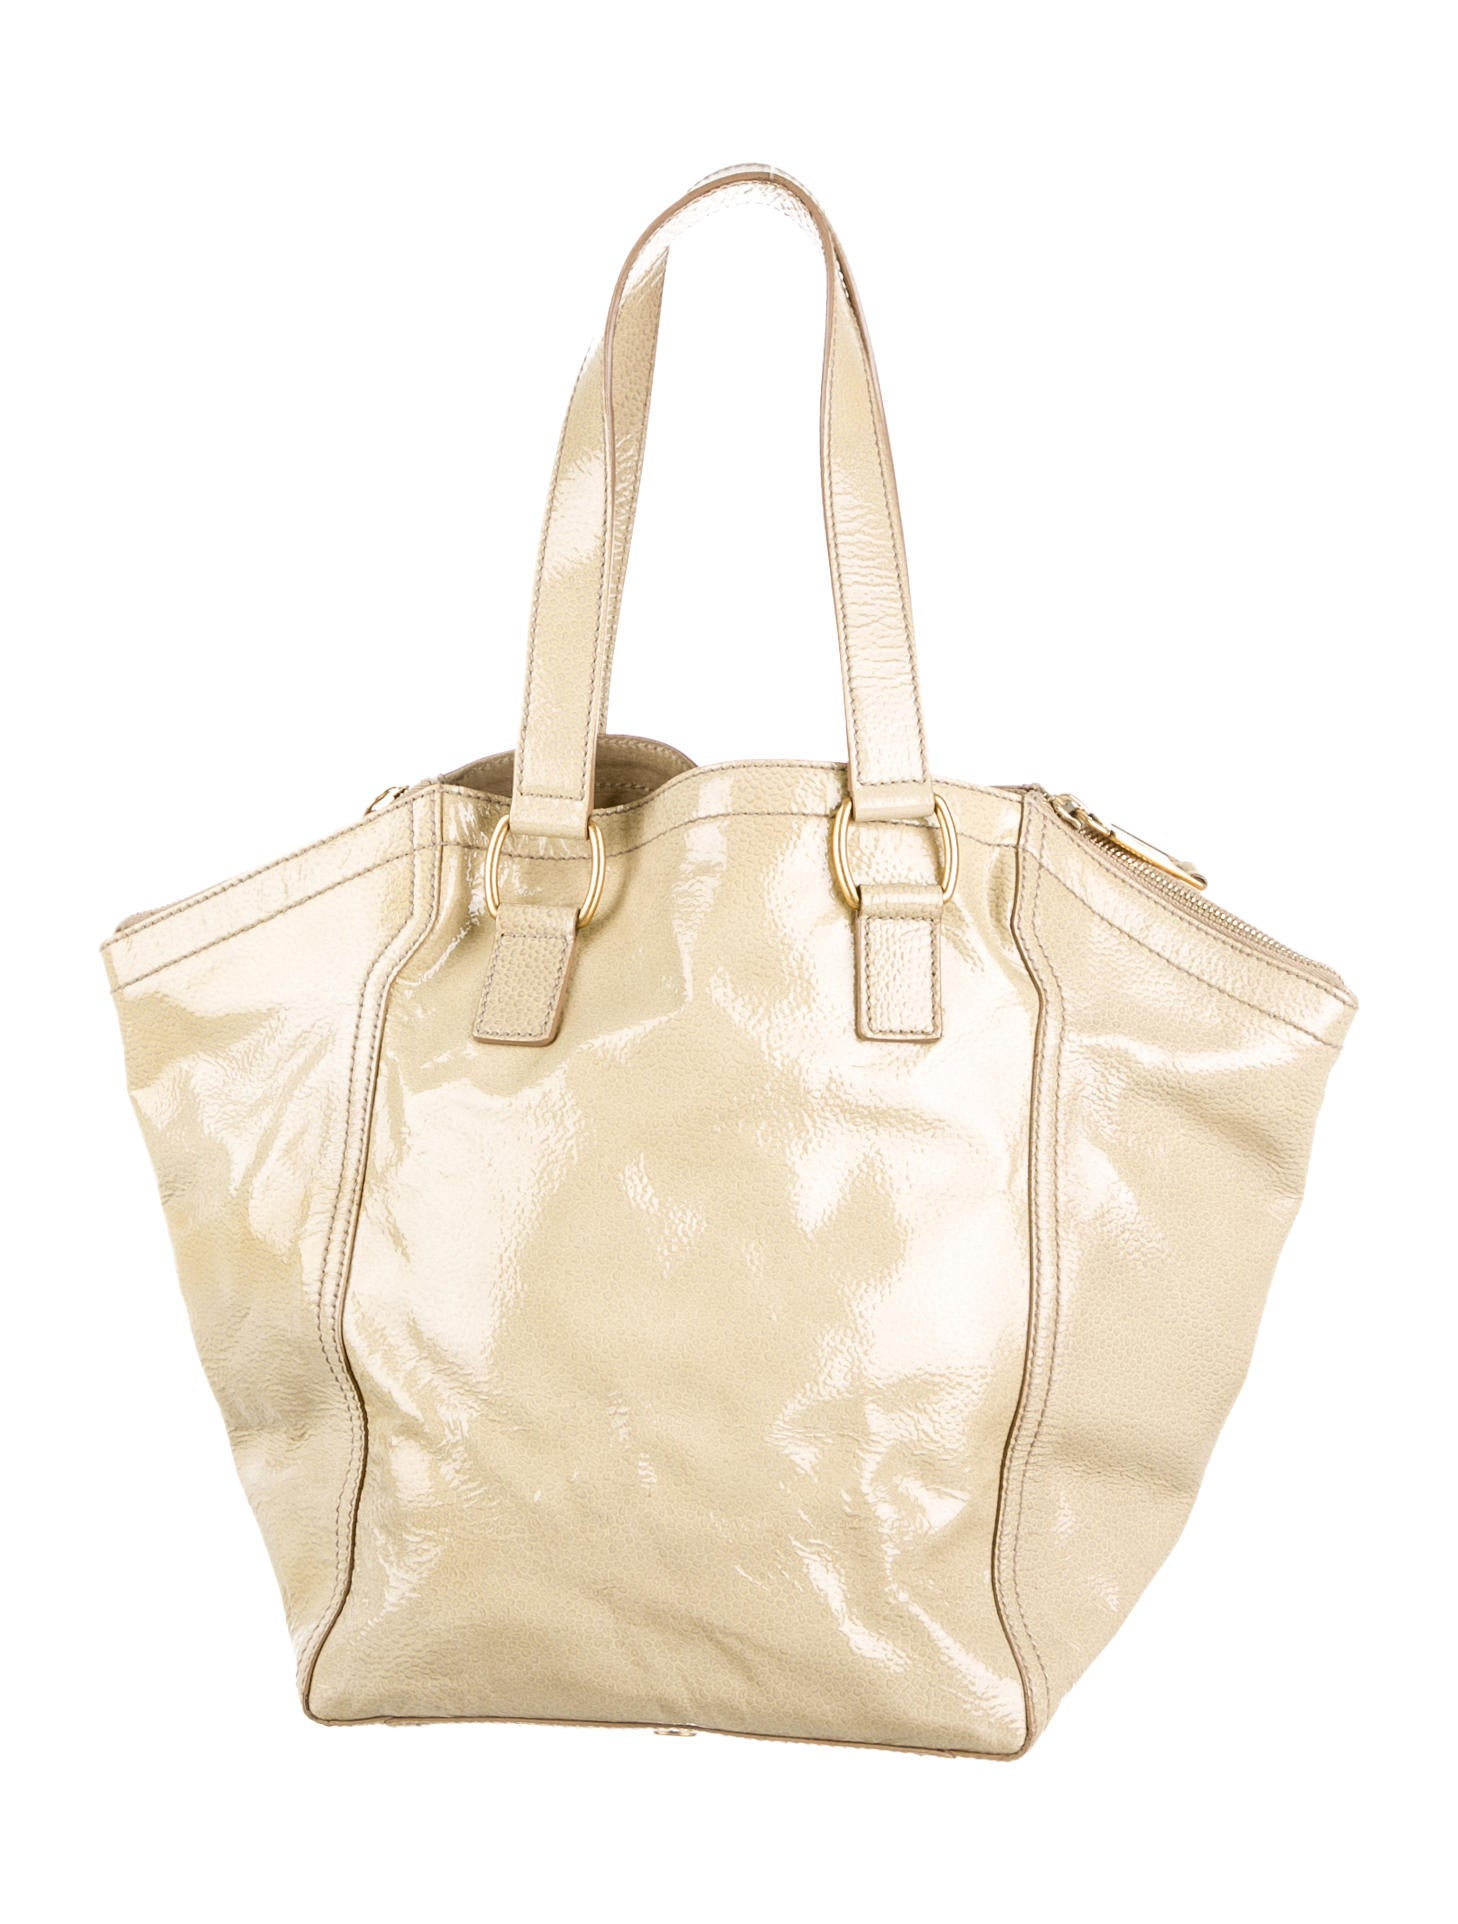 Yves Saint Laurent Downtown Tote - Handbags - YVE35523 | The RealReal